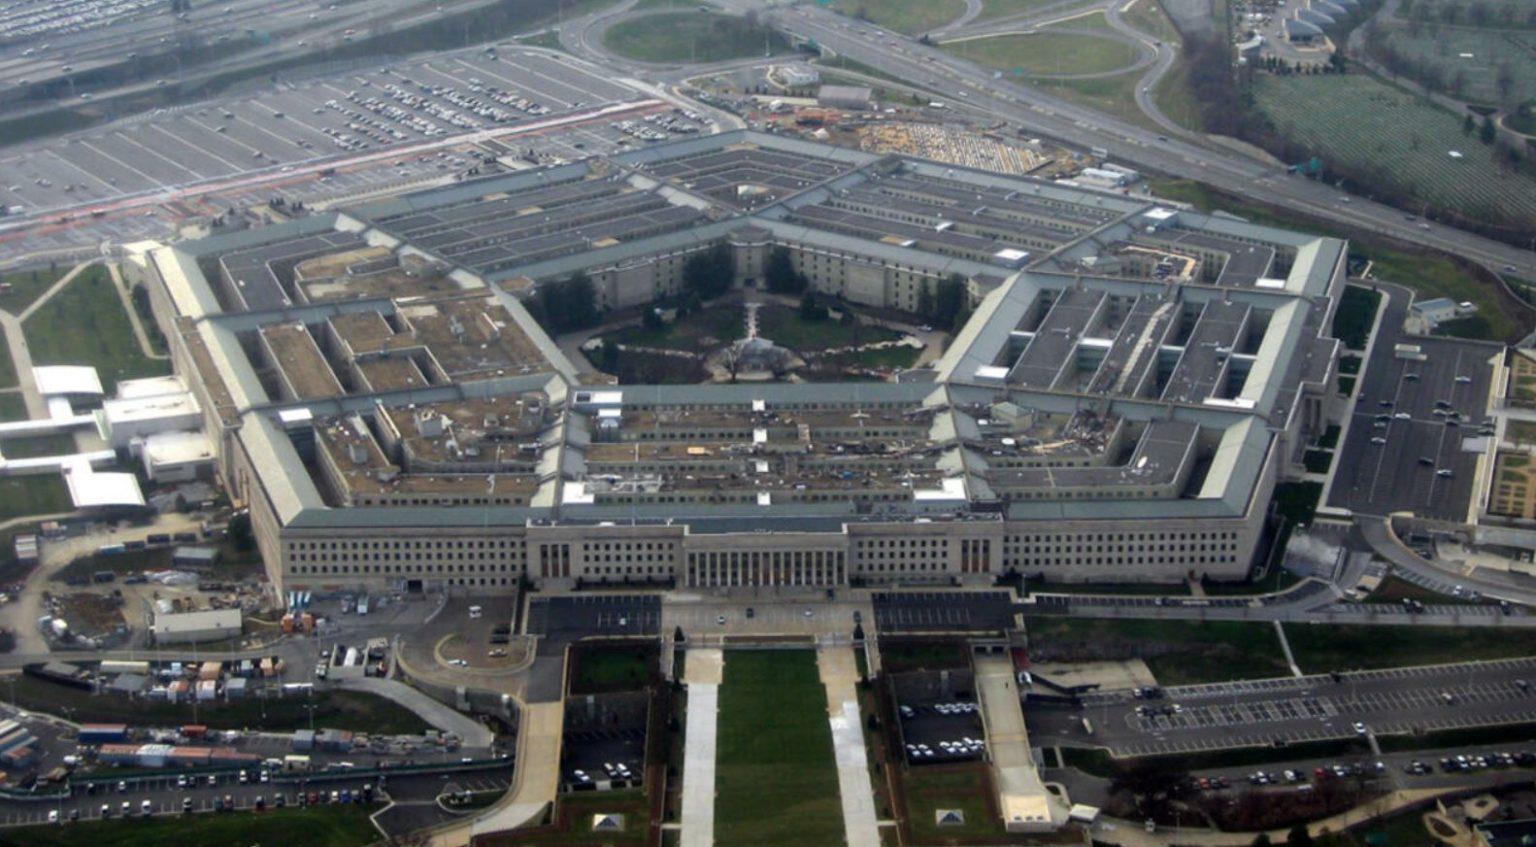 Photo of 900-strong force stays in Syria to help SDF: US Pentagon